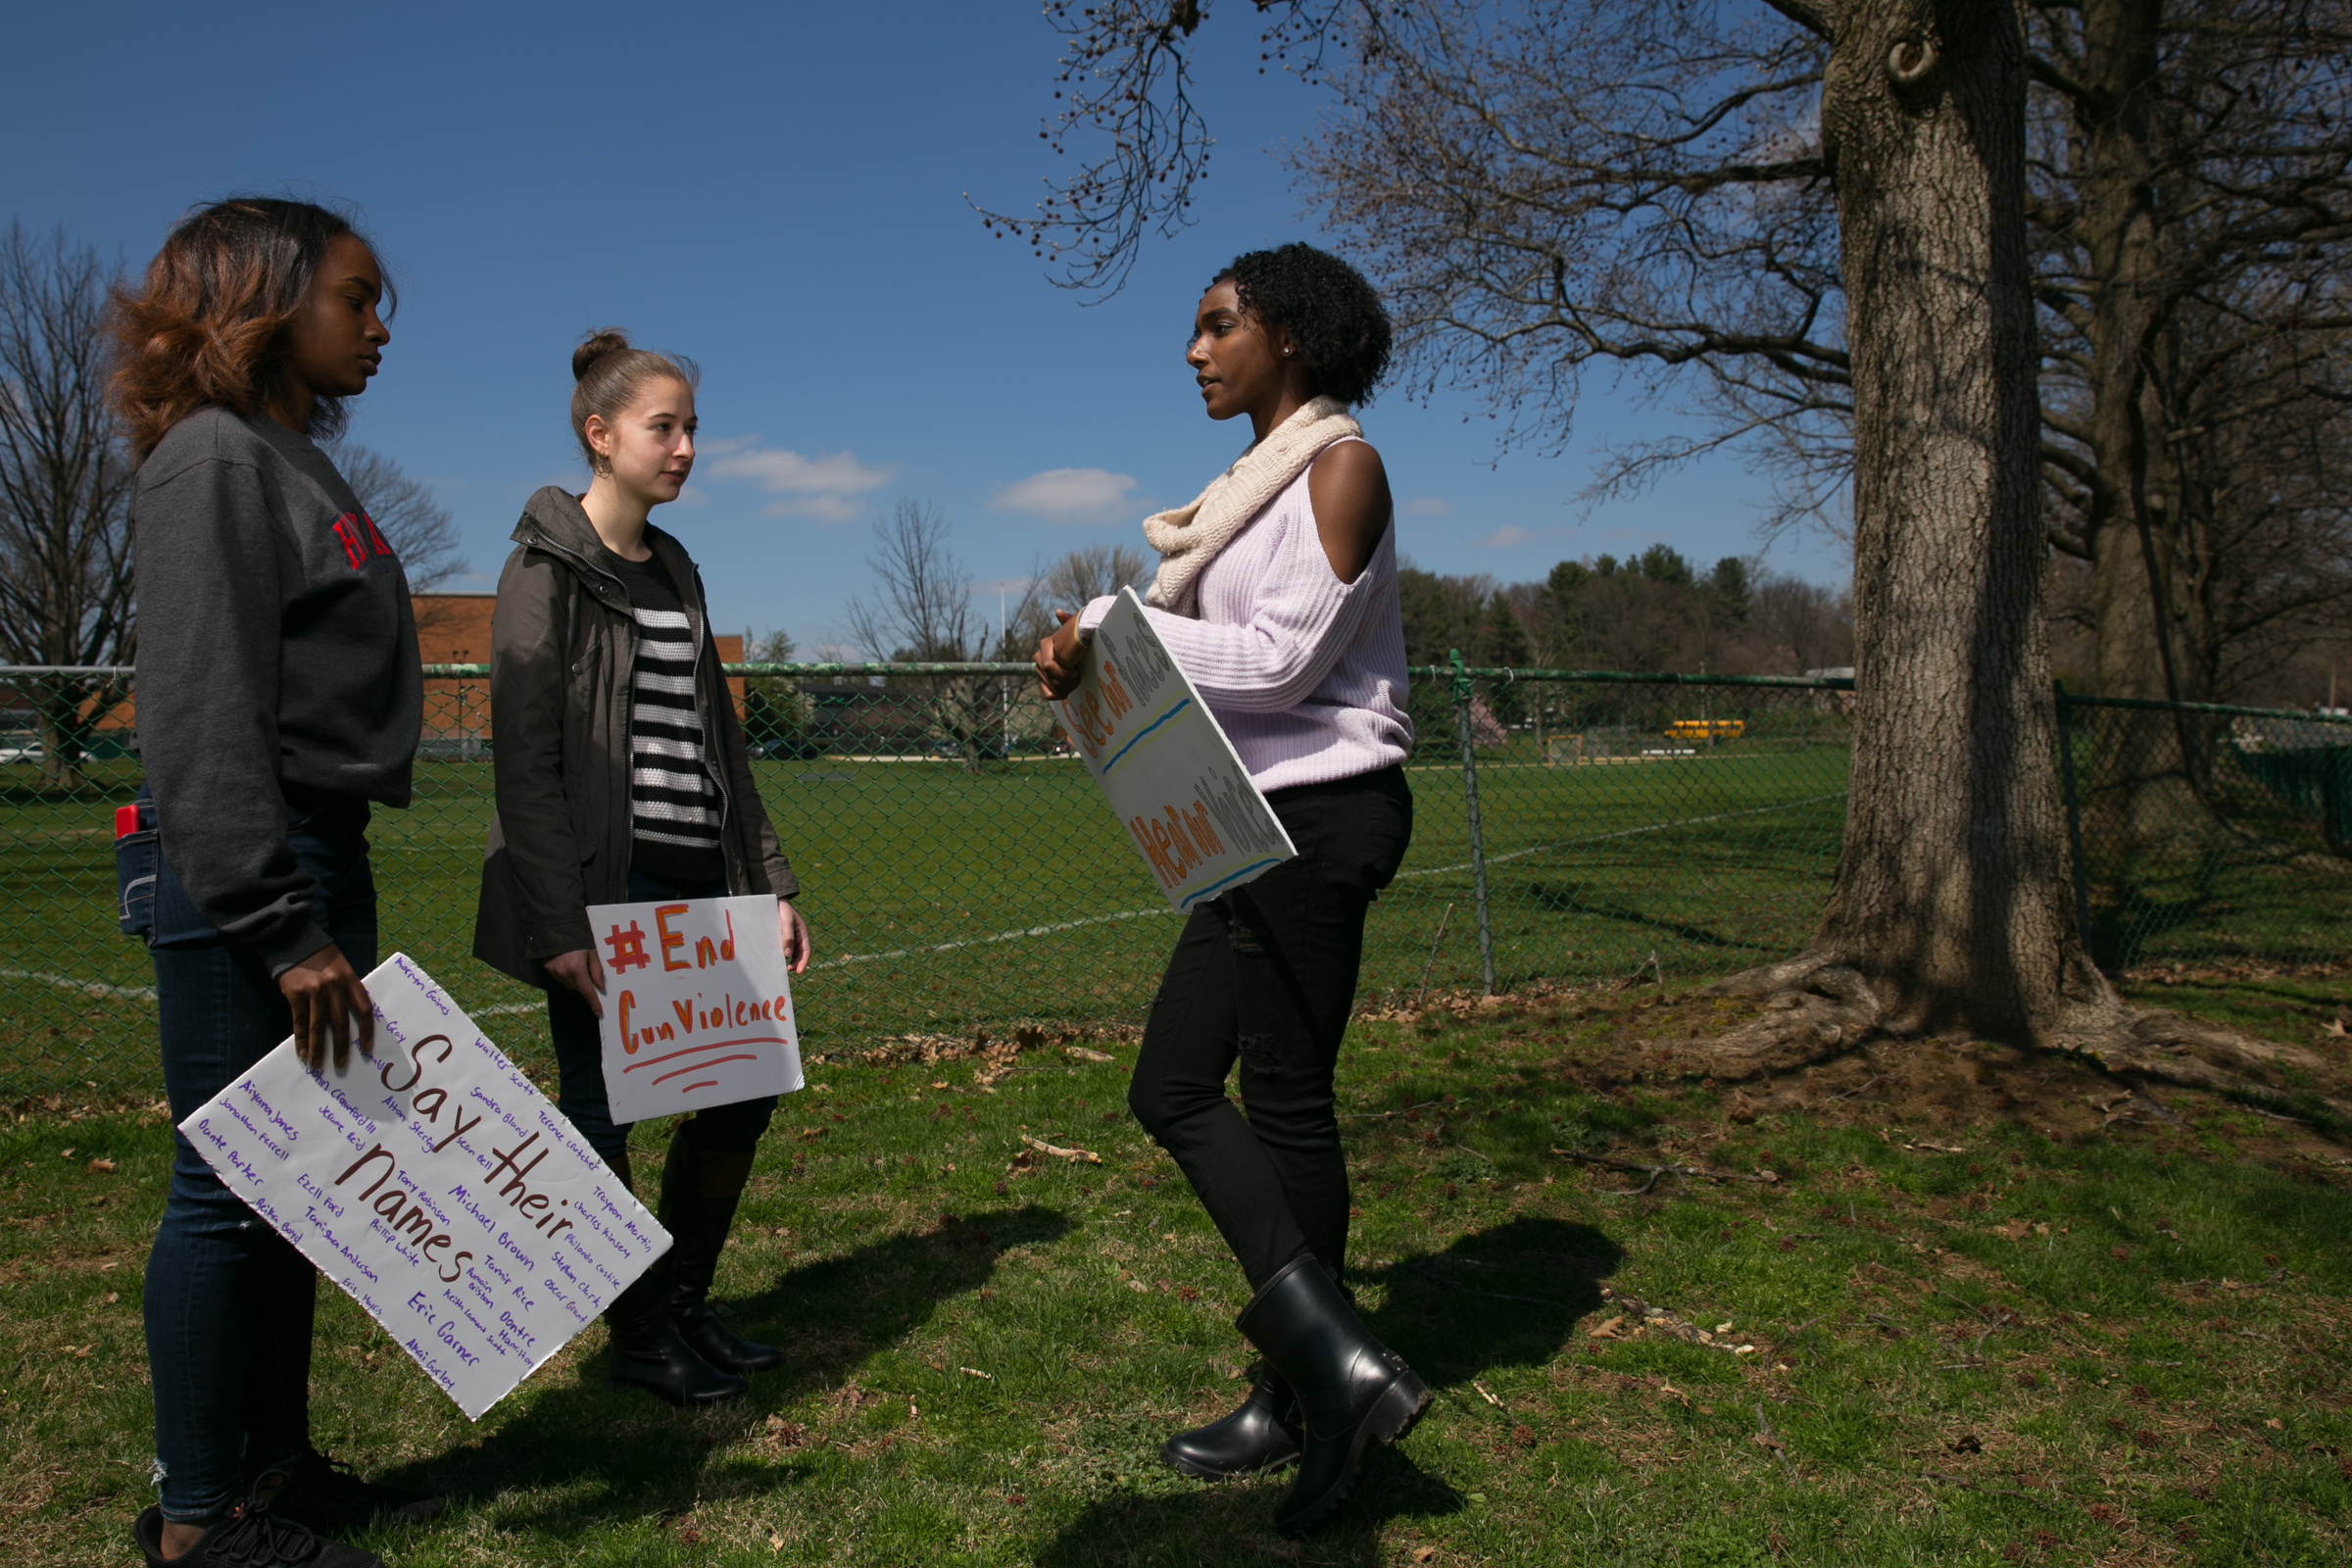 Arianna Wallace, left, Eve Glazier, center, and Eryn Banton, right, three of the students concerned about gun violence who organized a walkout this Friday, shown here in front of Cheltenham High School, Wednesday, April 18, 2018. JESSICA GRIFFIN / Staff Photographer.